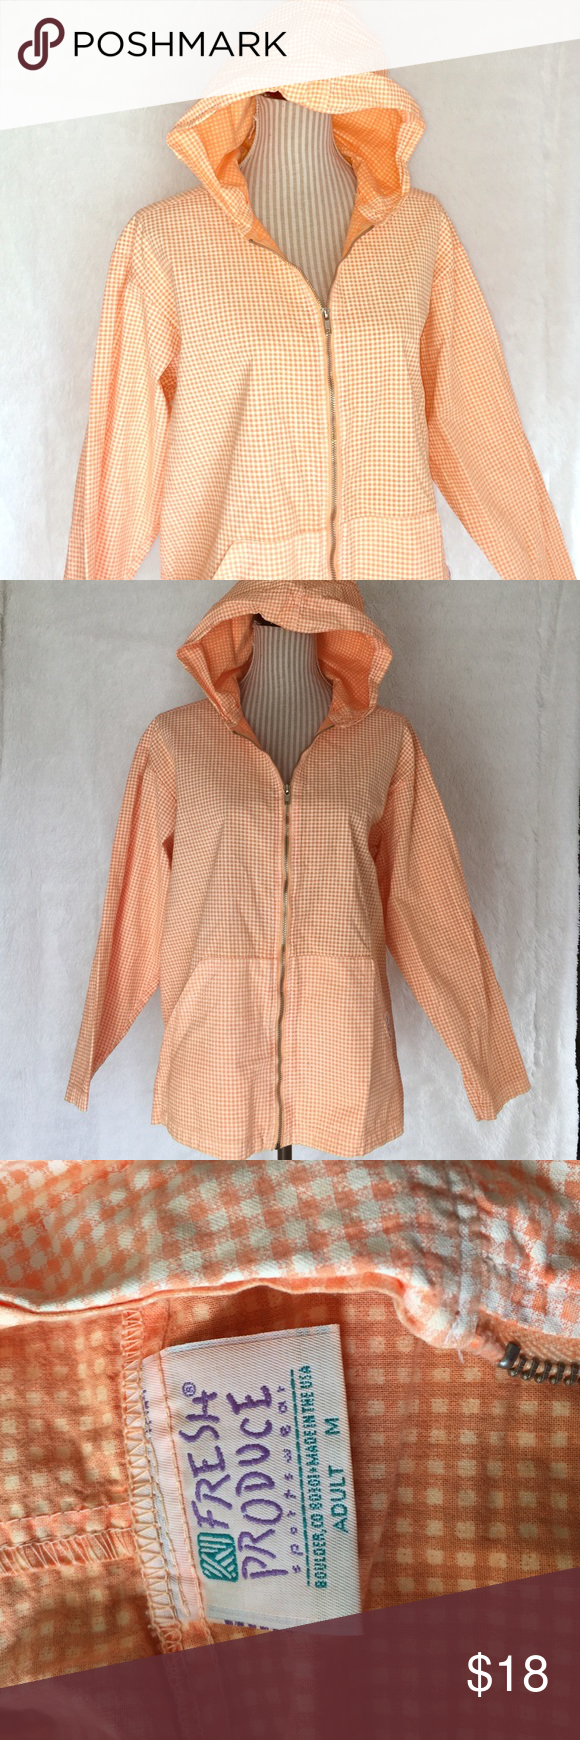 "🆕Orange Gingham Light Jacket Light and sunny!! Perfect for days when you just need a little something more. Says size medium but more of a L or XL. Bust about 47"" and length about 26"" and 2"" side slits on bottom sides to lay comfortably. Fresh Produce Jackets & Coats"